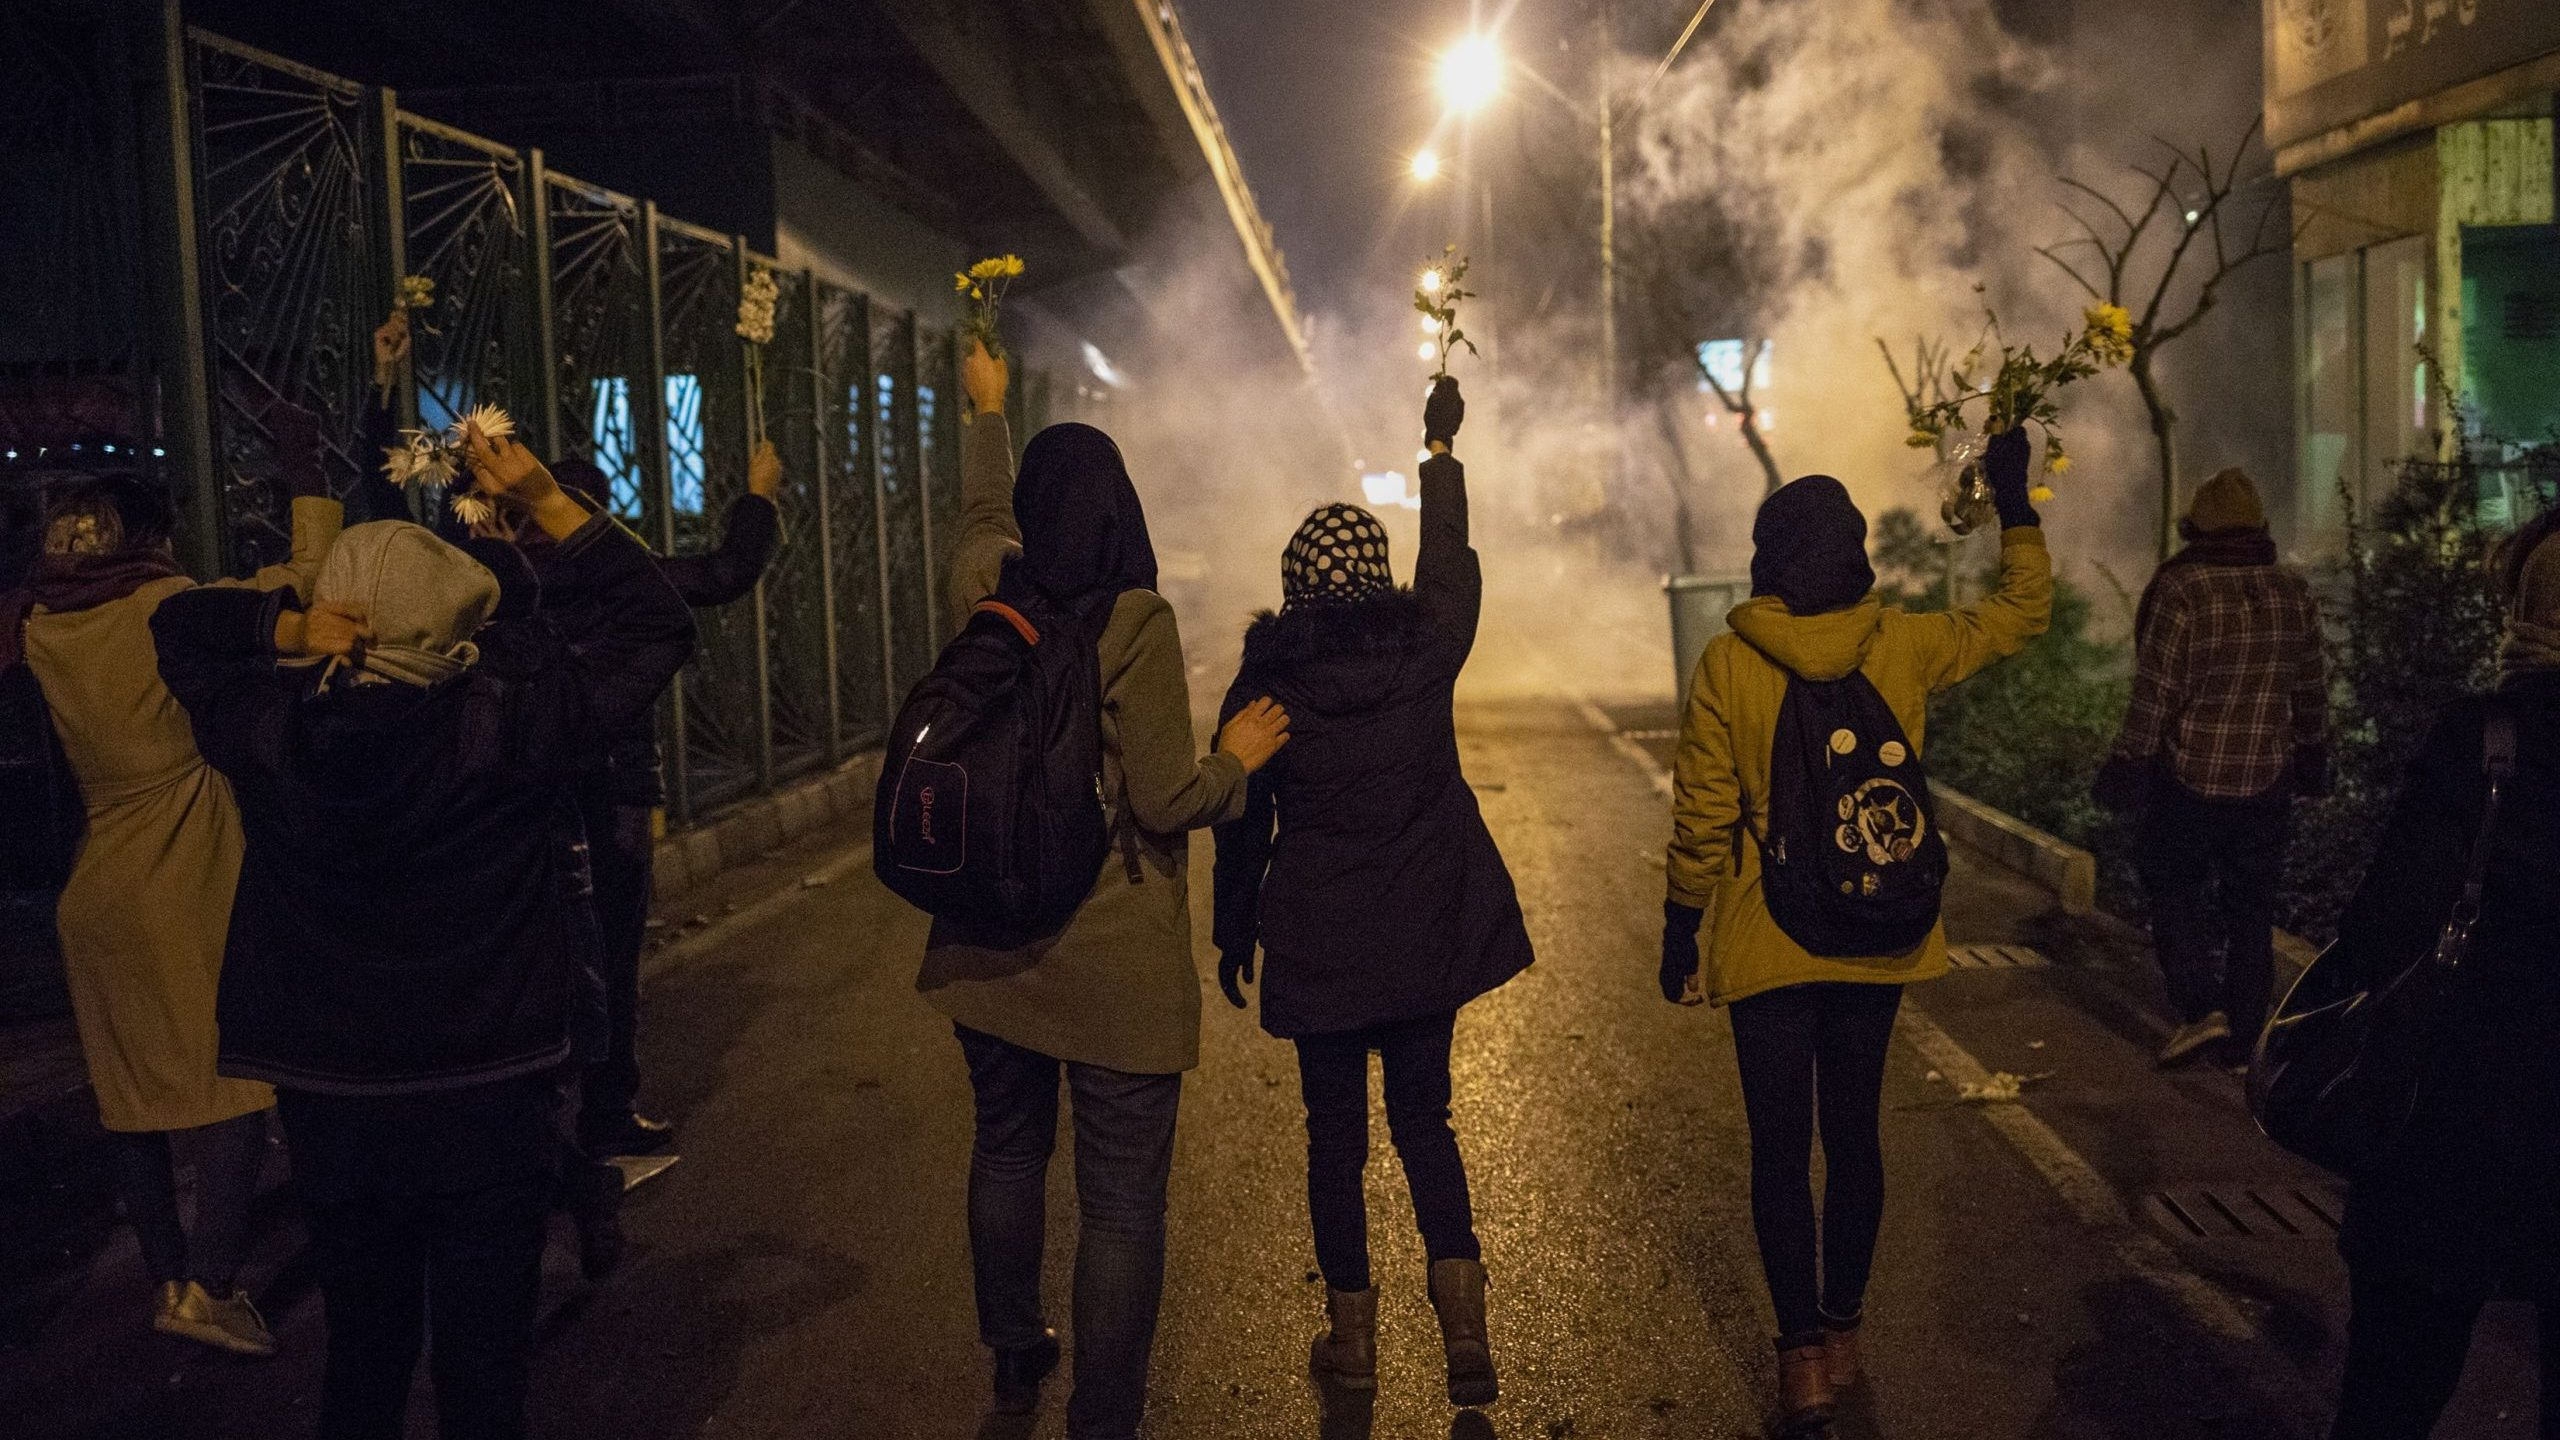 Iranian protesters hold flowers as riot police fire tear gas during a demonstration in front of Tehran's Amir Kabir University on January 11, 2020. (Credit: STR/AFP via Getty Images)